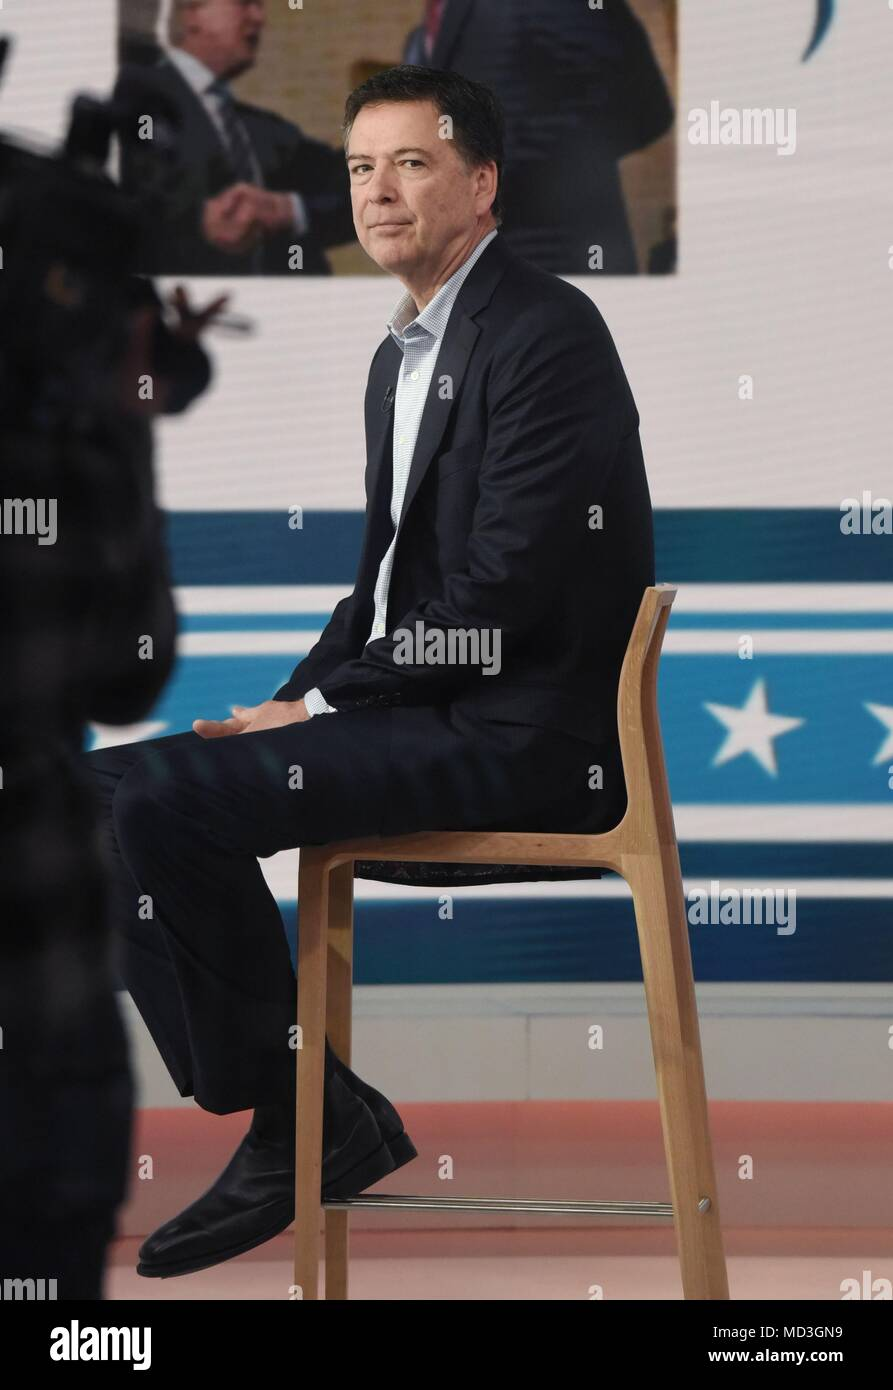 New York, NY, USA. 18th Apr, 2018. James Comey, the former Director of the FBI, appears on The Today Show to promote his book: A Higher Loyalty: Truth, Lies, and Leadership out and about for Celebrity Candids - WED, New York, NY April 18, 2018. Credit: Derek Storm/Everett Collection/Alamy Live News - Stock Image